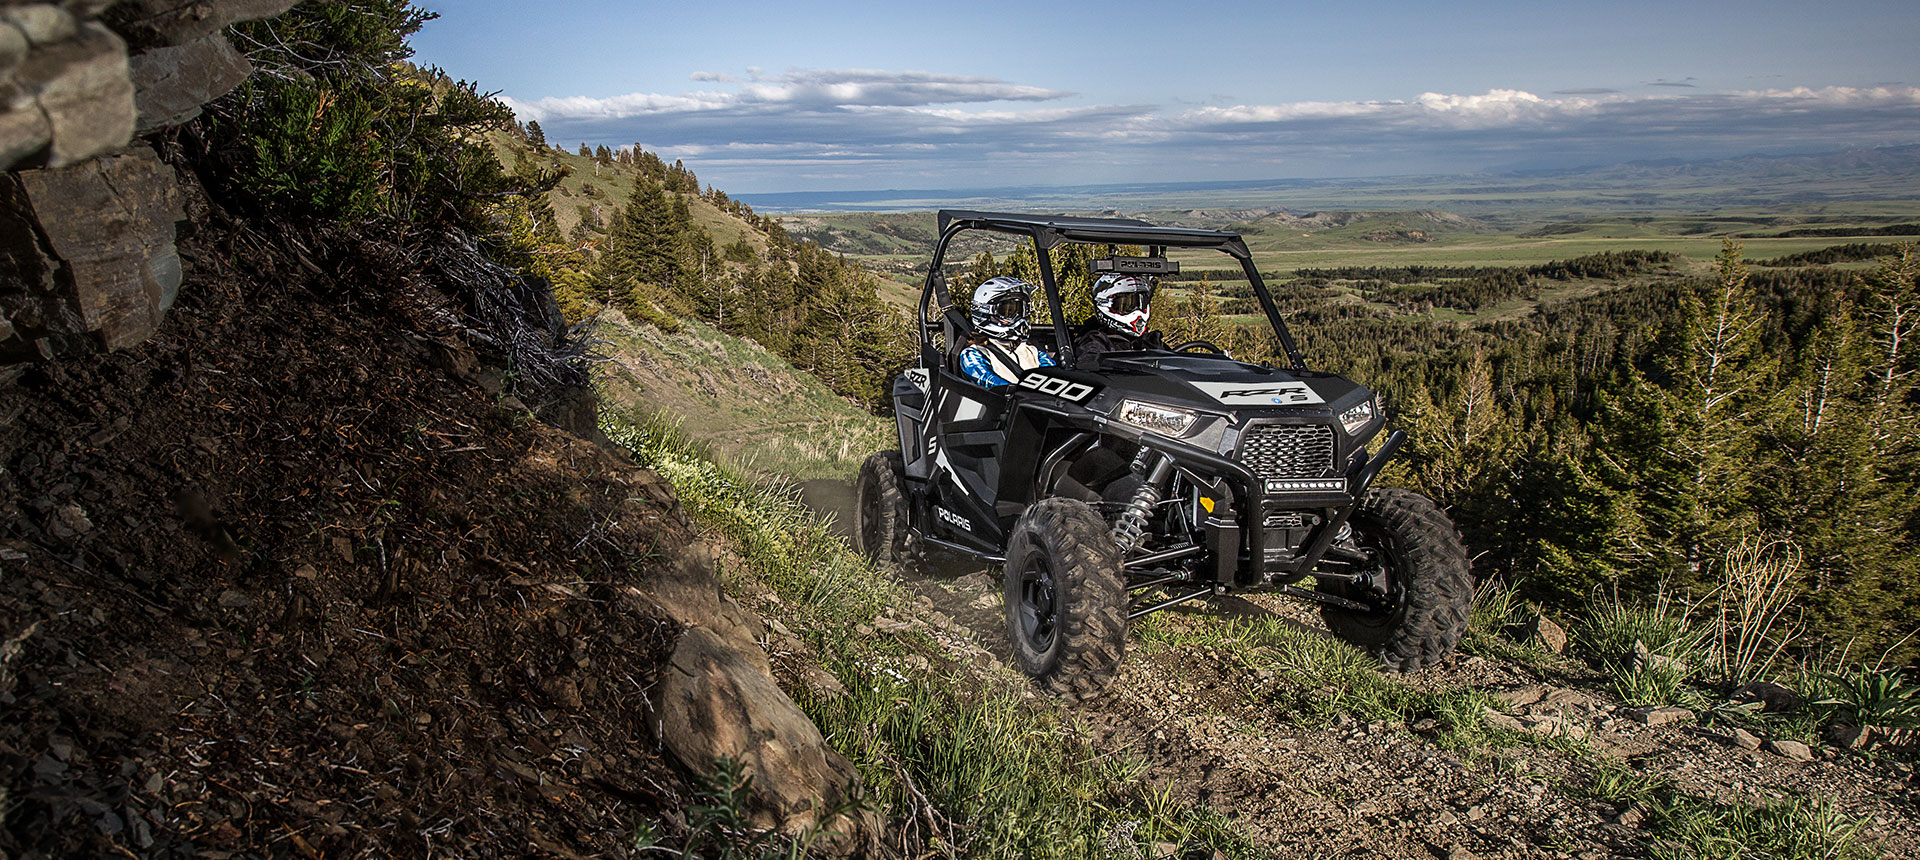 2019 Polaris RZR S 900 EPS in Albuquerque, New Mexico - Photo 4